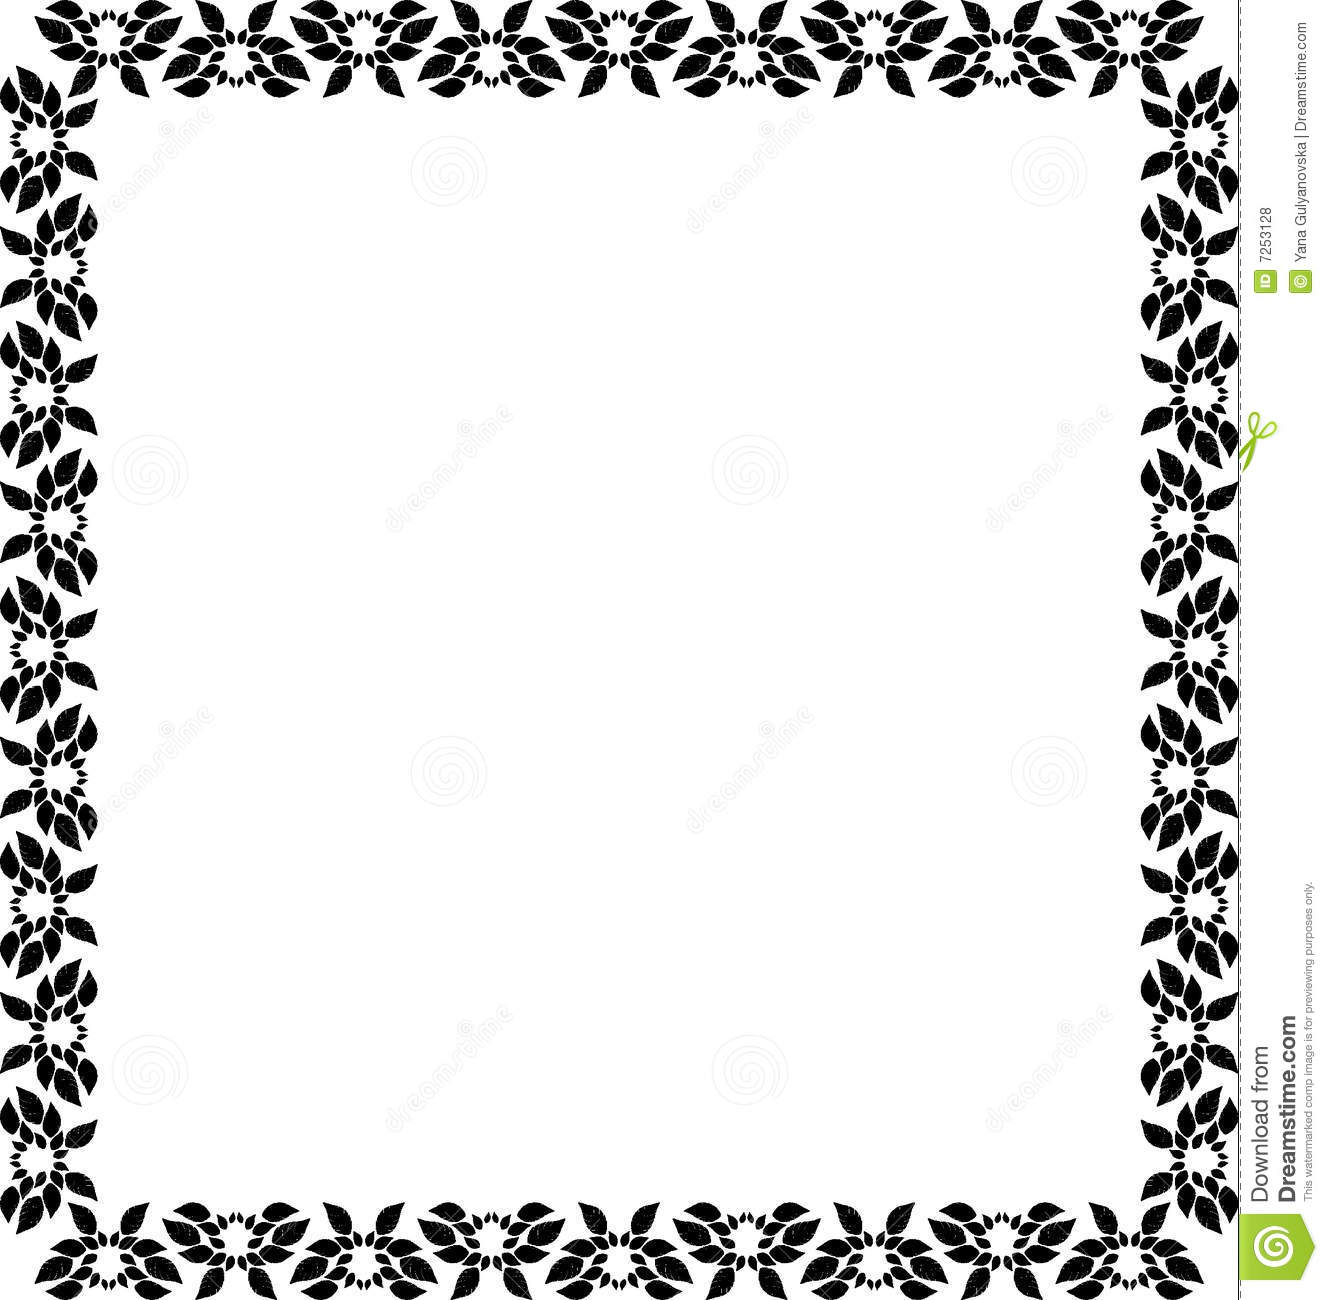 Design frame stock vector. Illustration of leaf, nature - 7253128